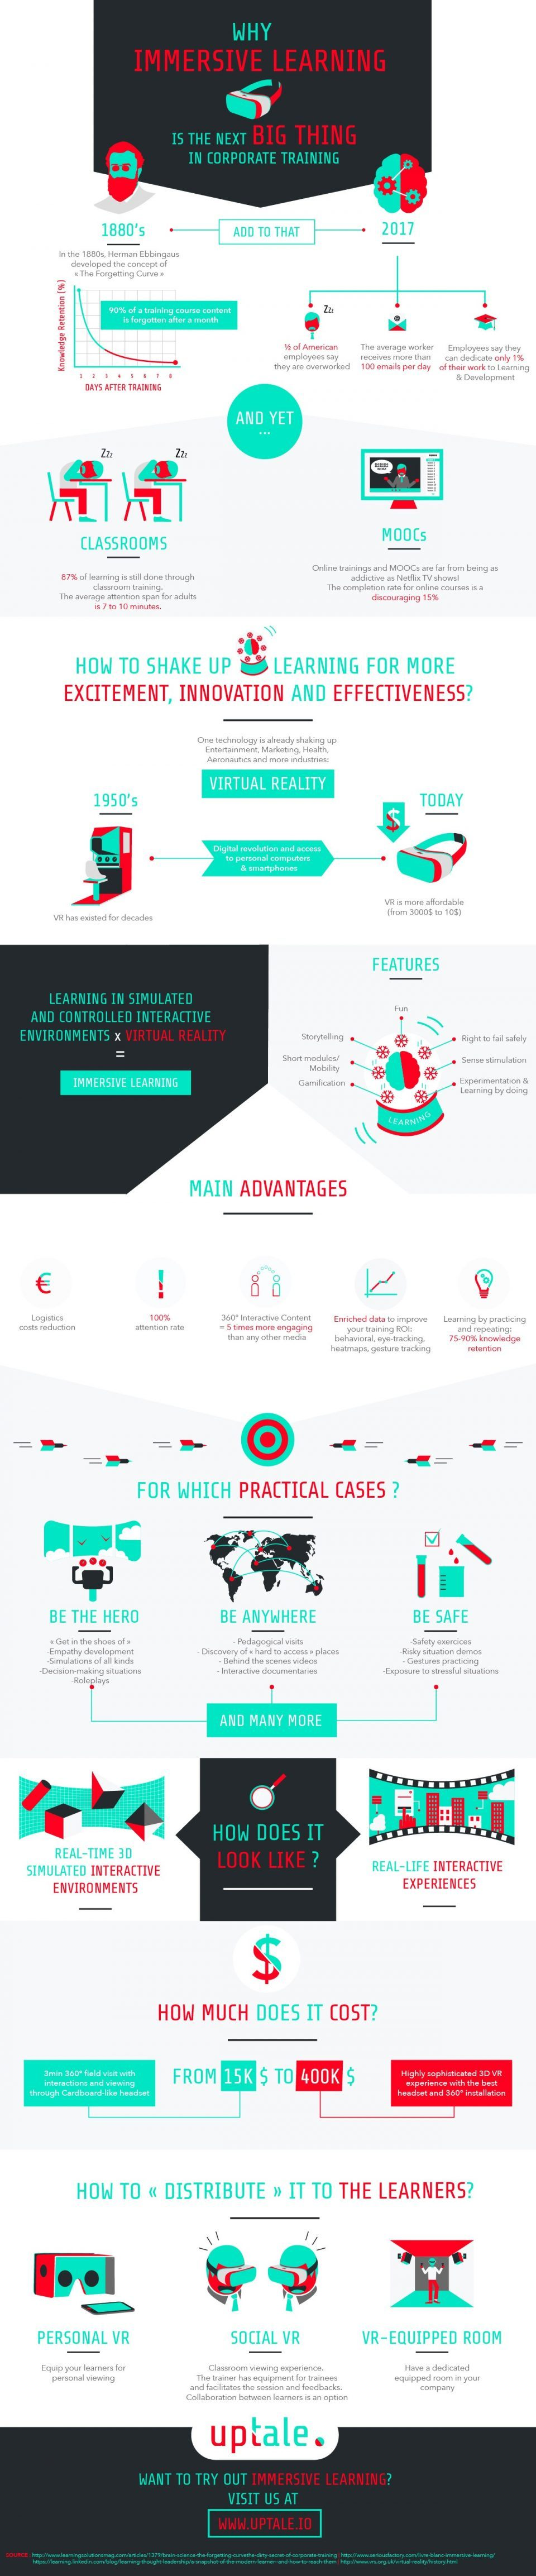 Why Immersive Learning is the Next Big Thing in Corporate Training Infographic